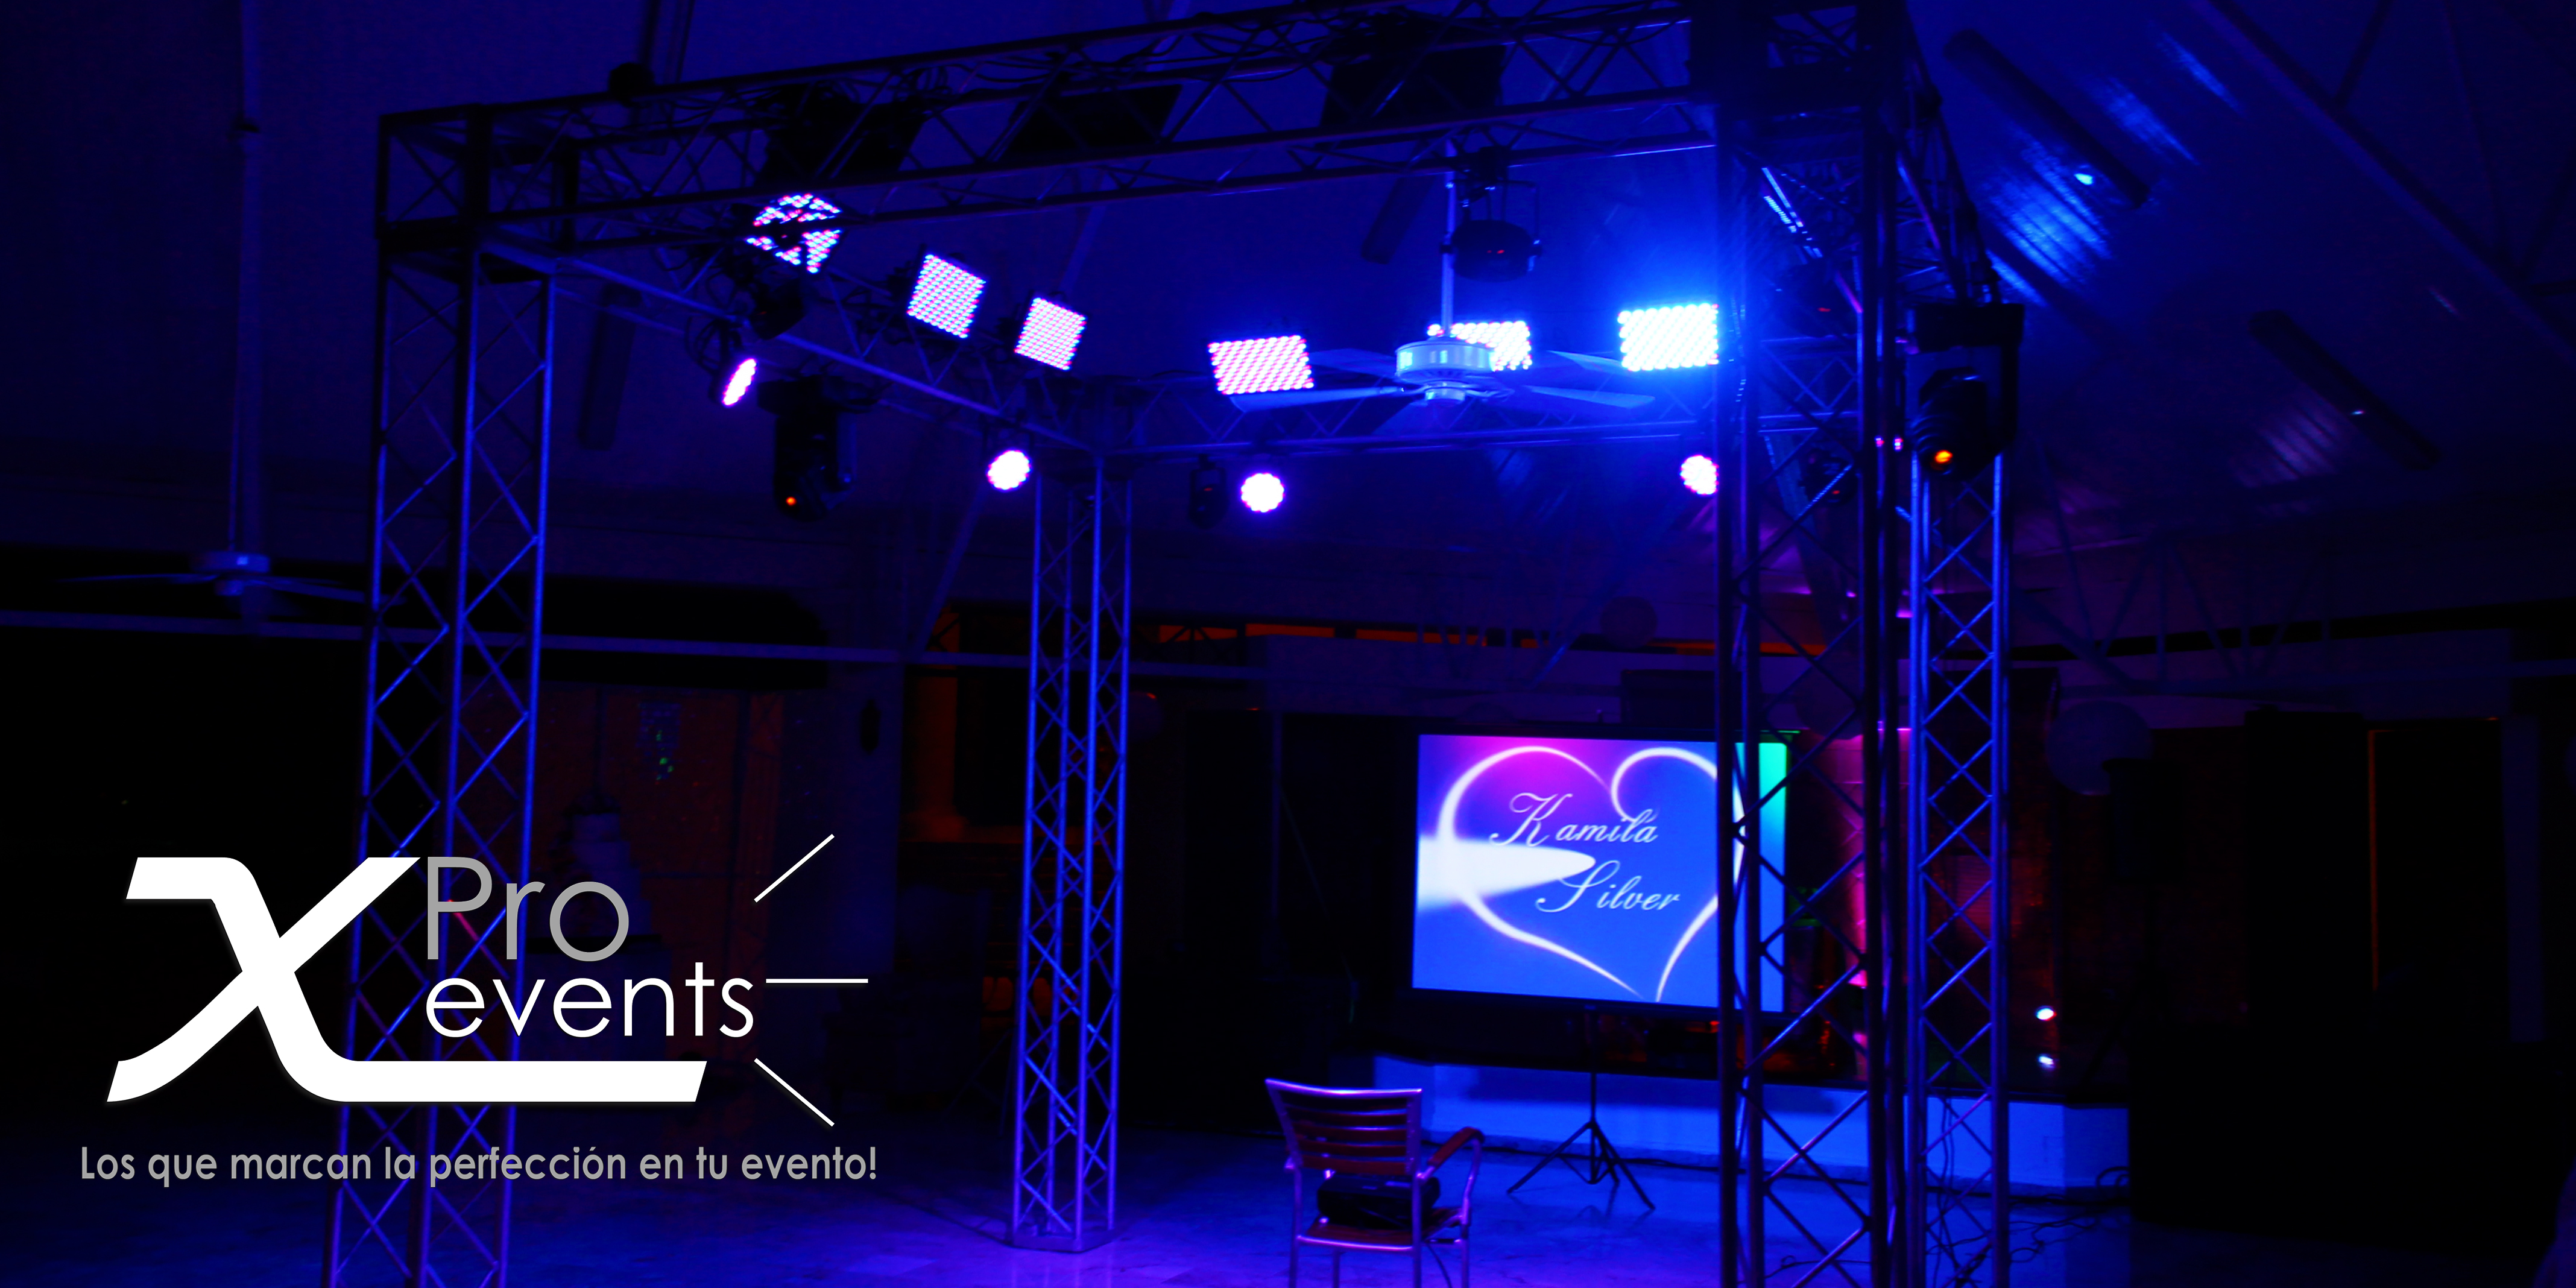 www.Xproevents.com - Techo Truss & luces moviles para pista de baile.jpg